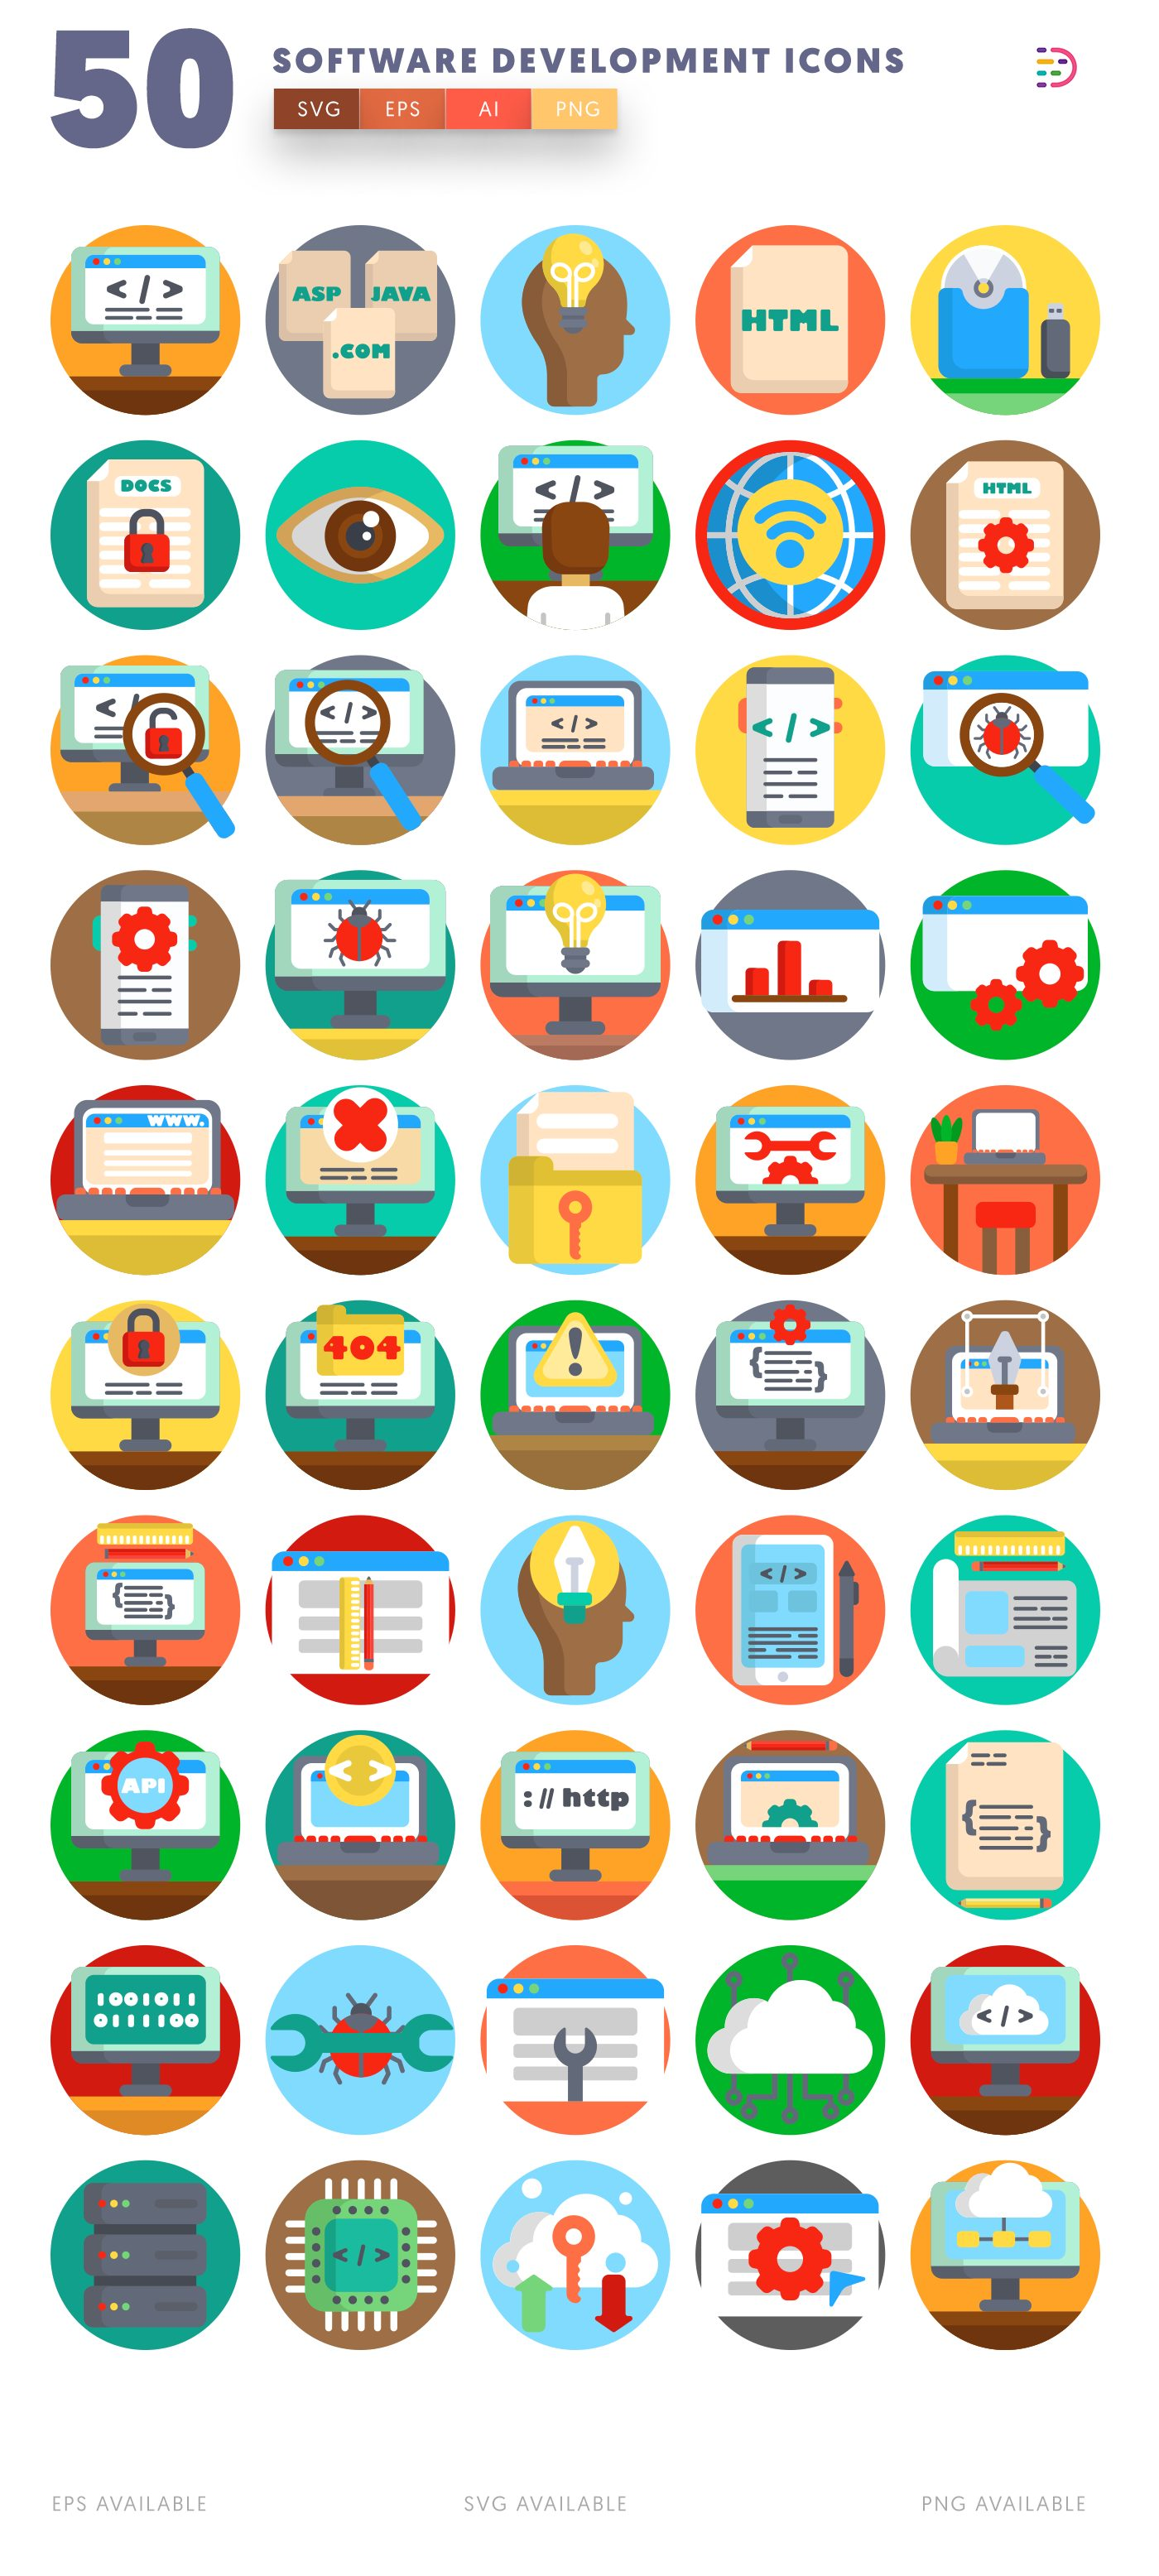 Software Development icon pack